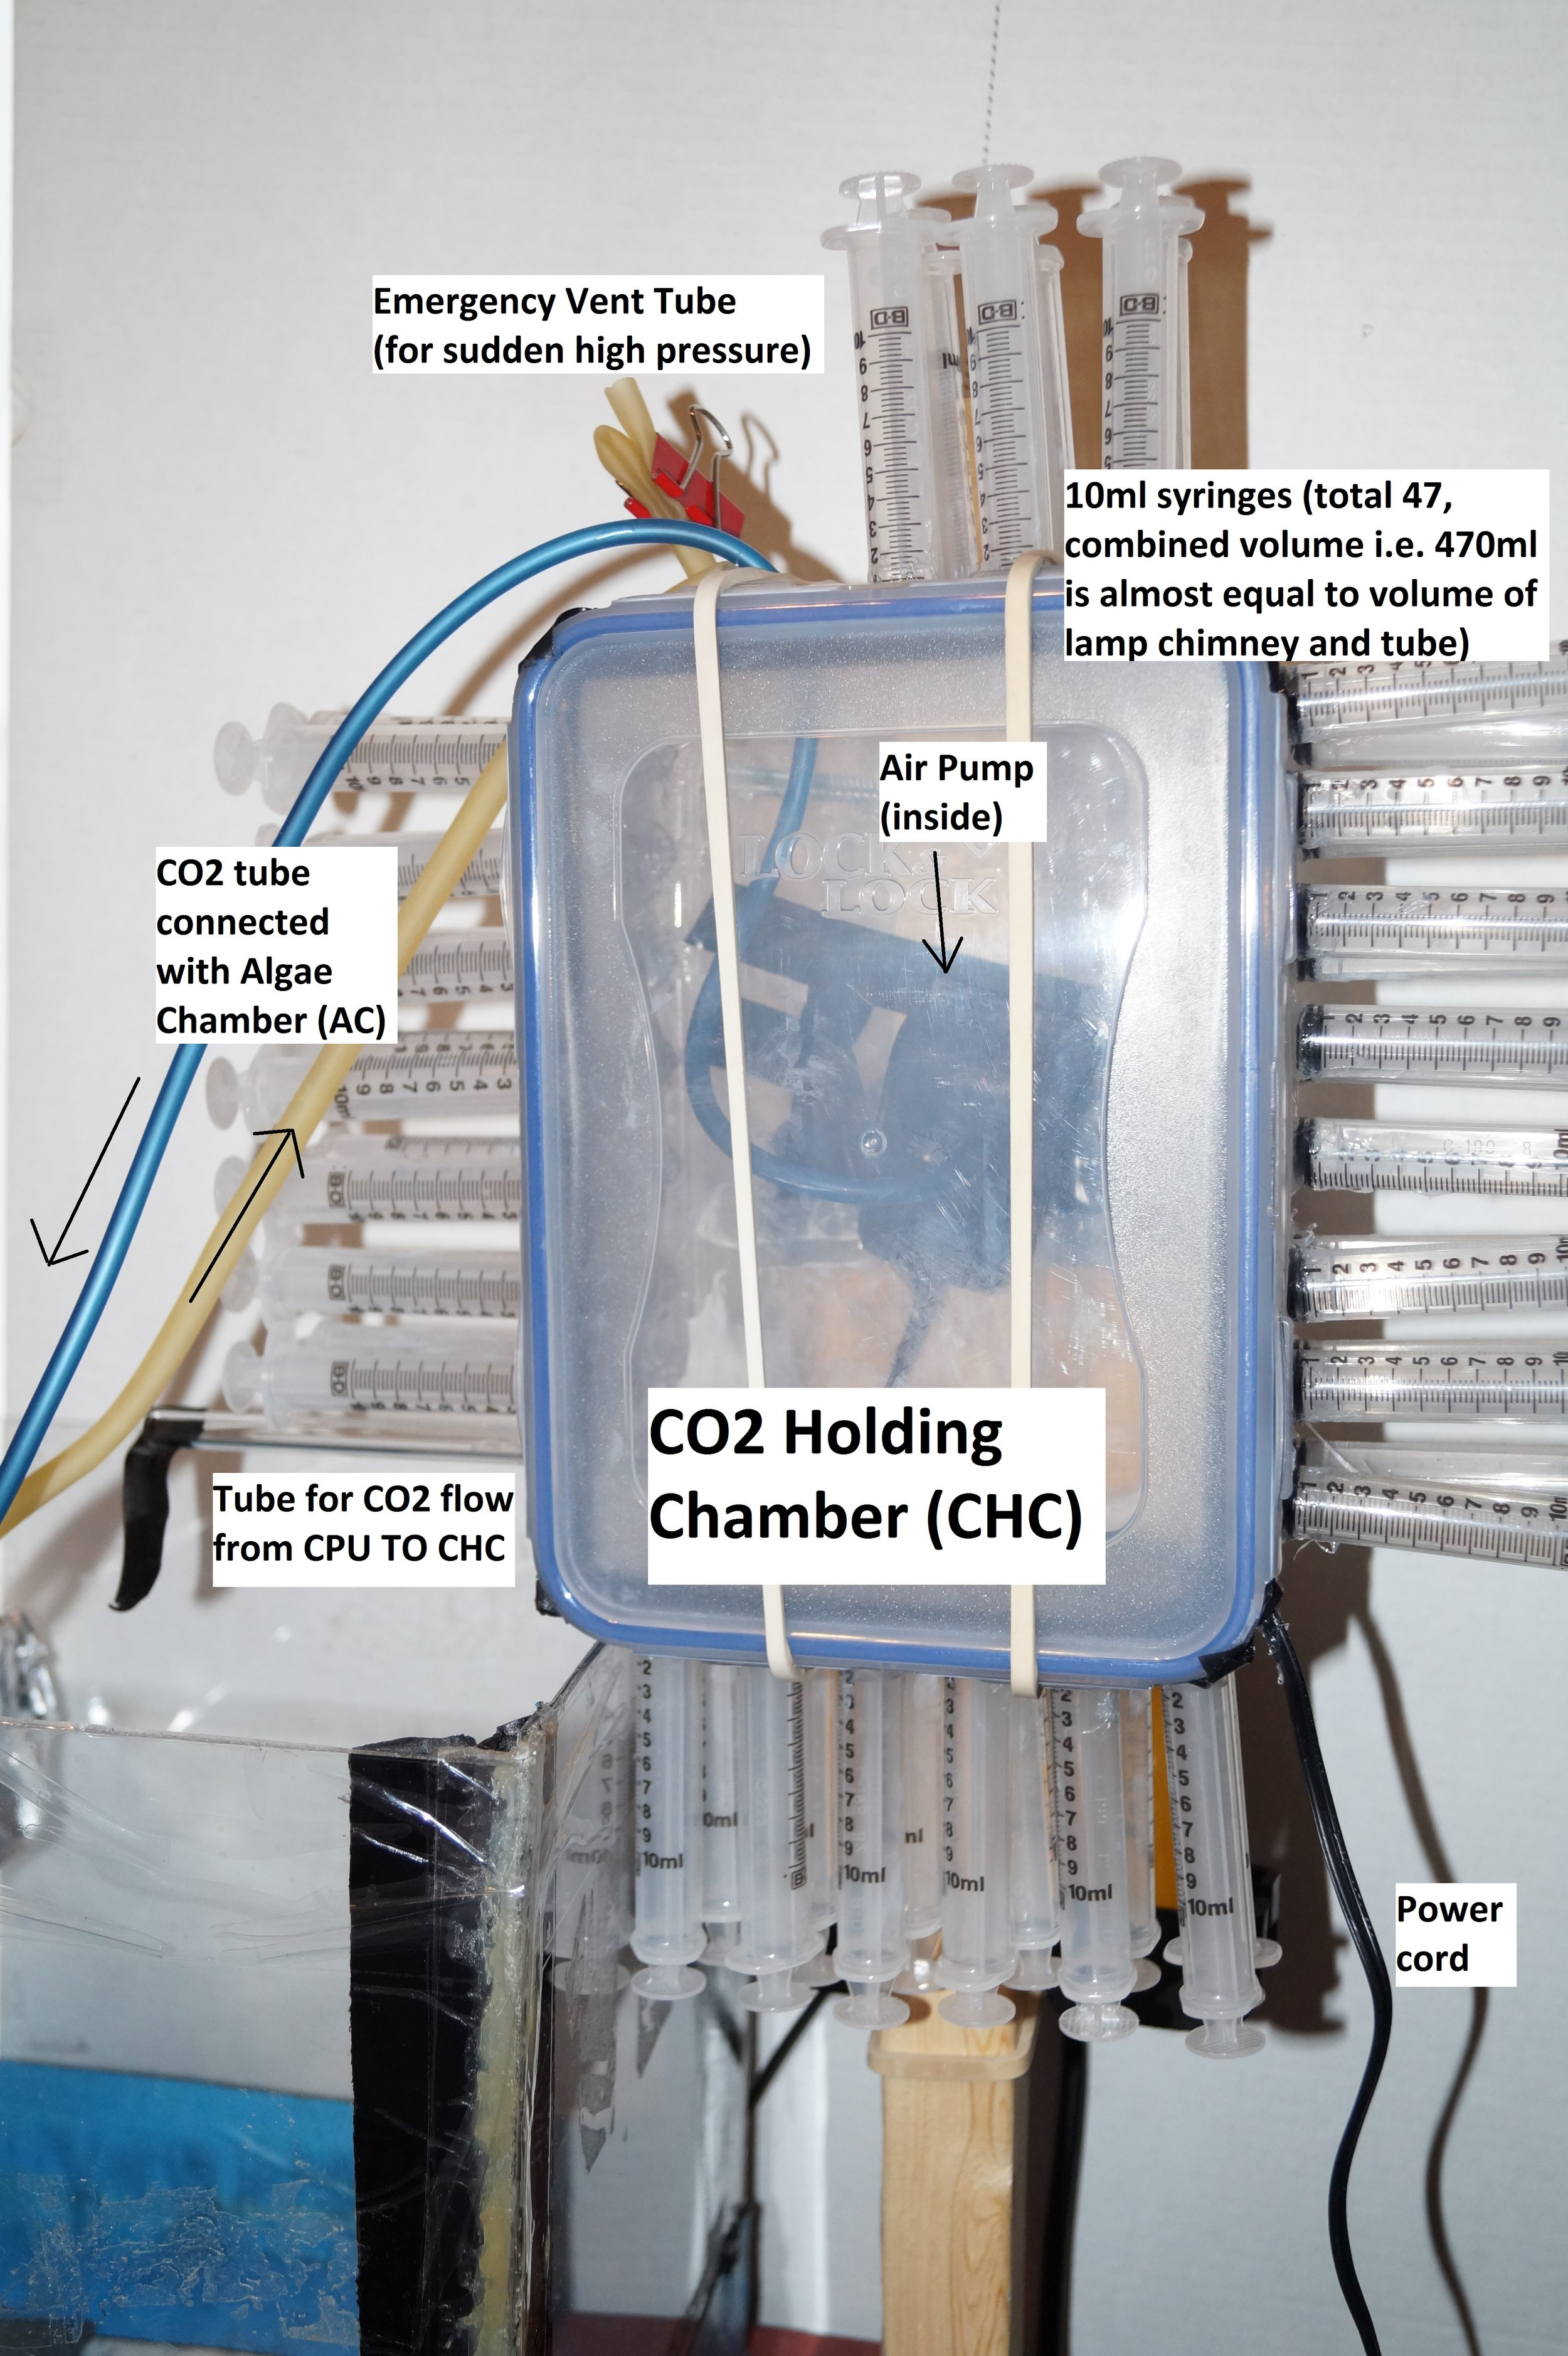 Figure 2. CO2 Holding Chamber (CHC).